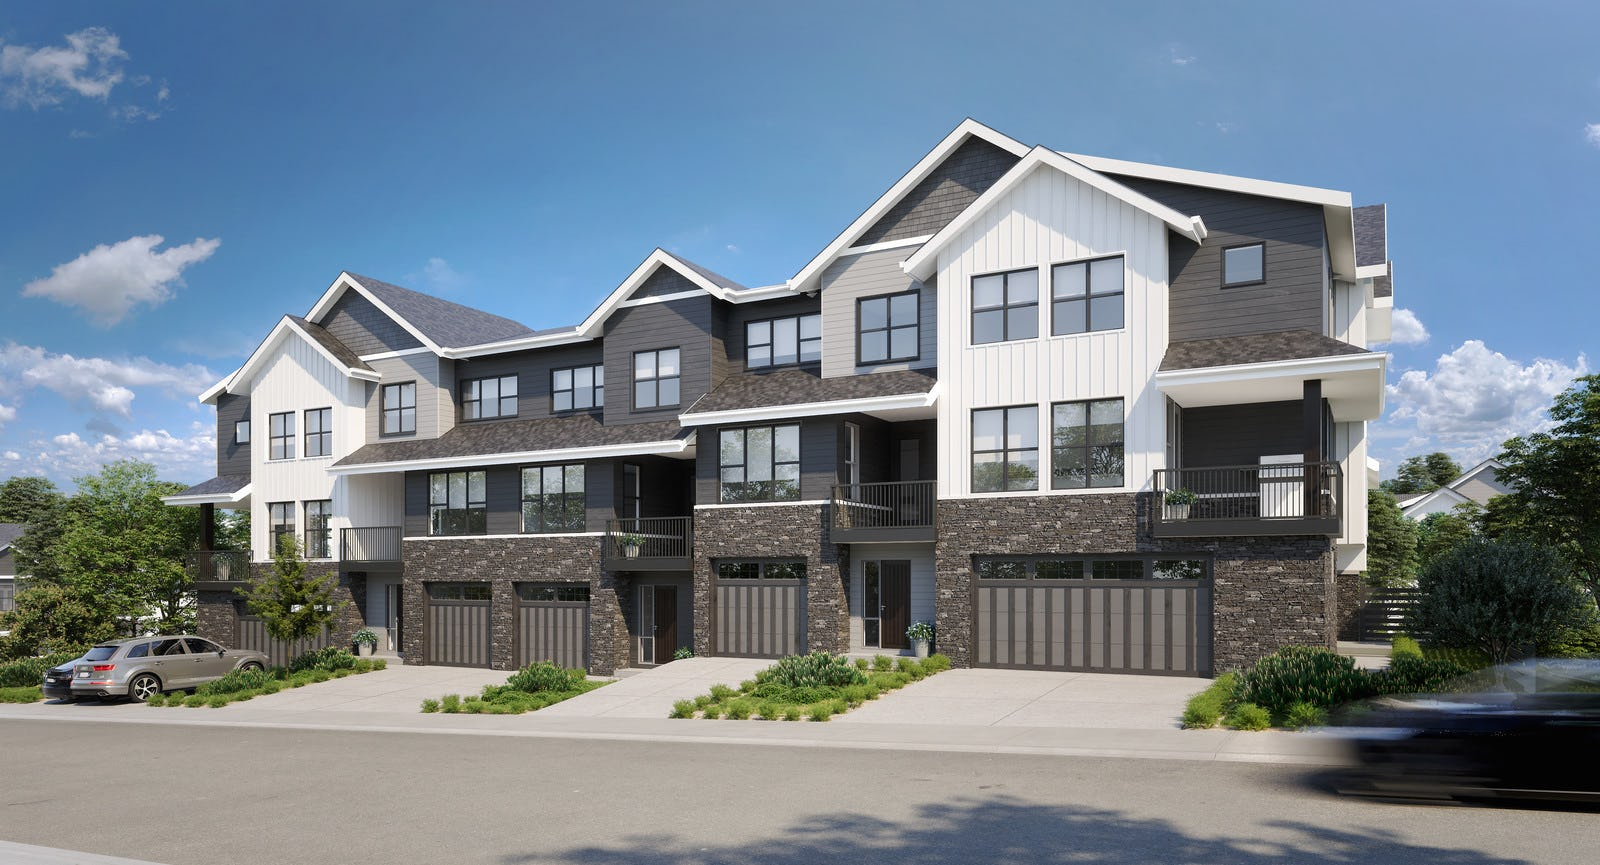 Grey and white townhomes with garage